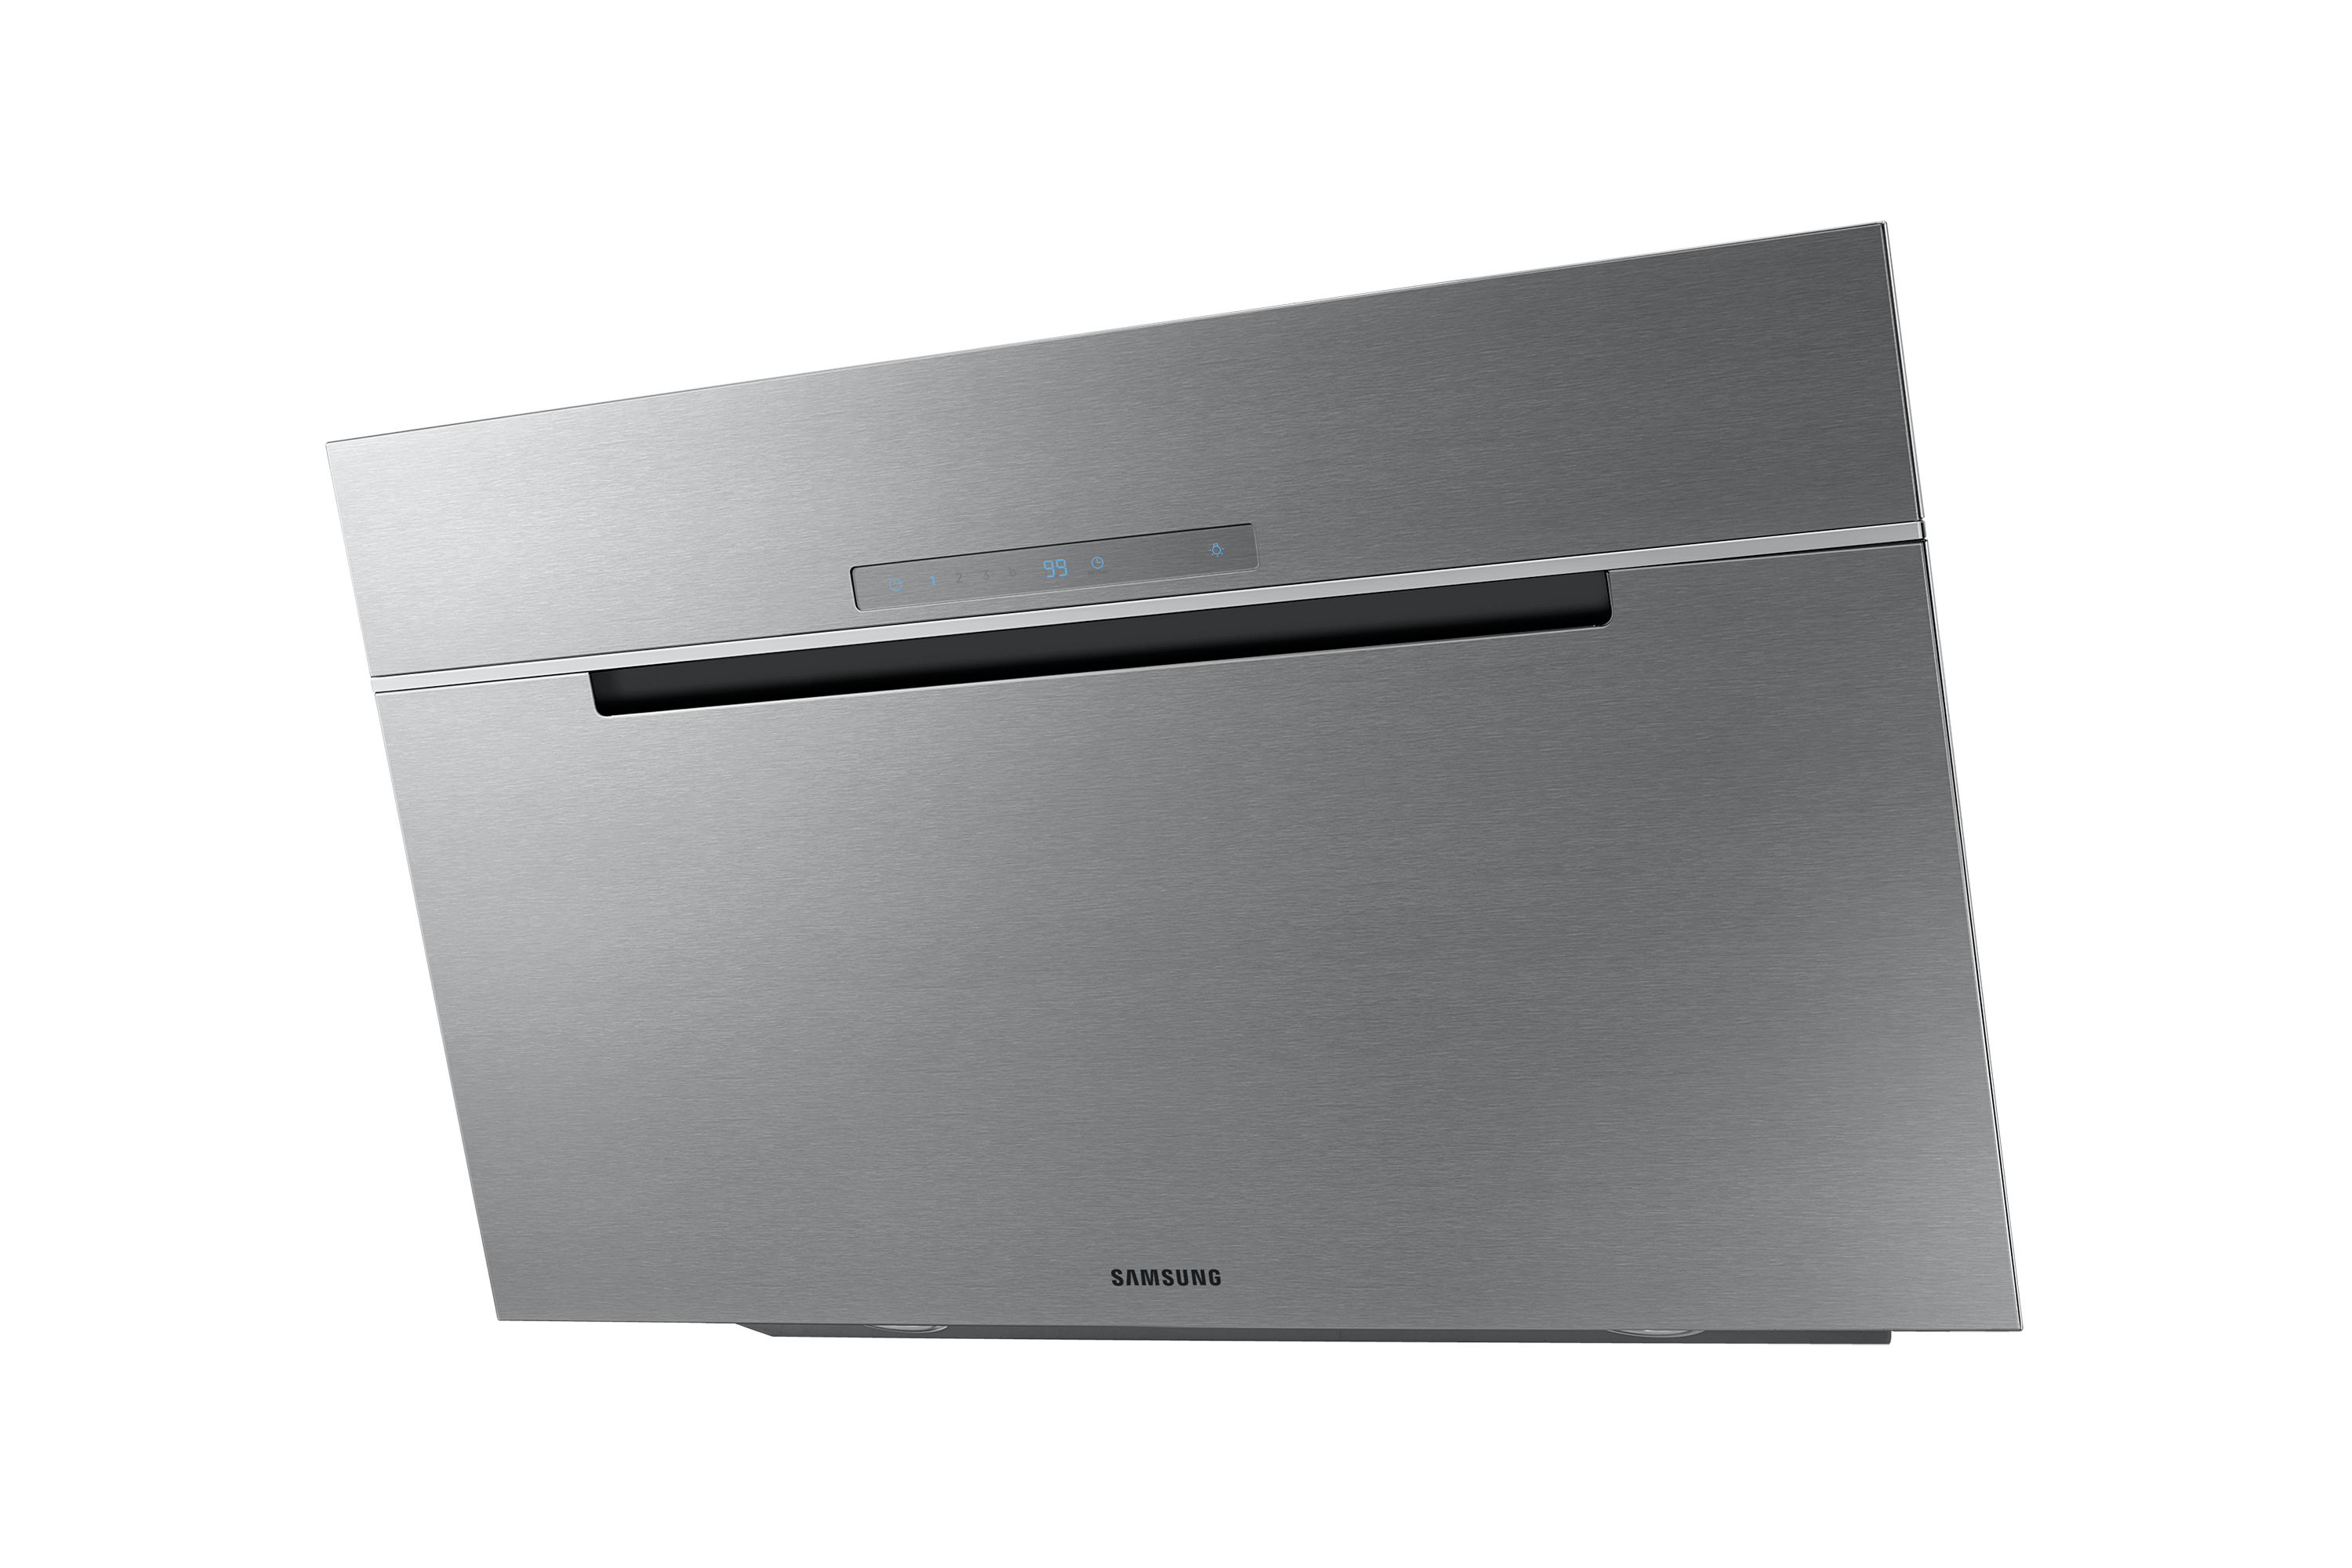 Samsung Wall Mount Cooker Hood with Premium Design, 90cm